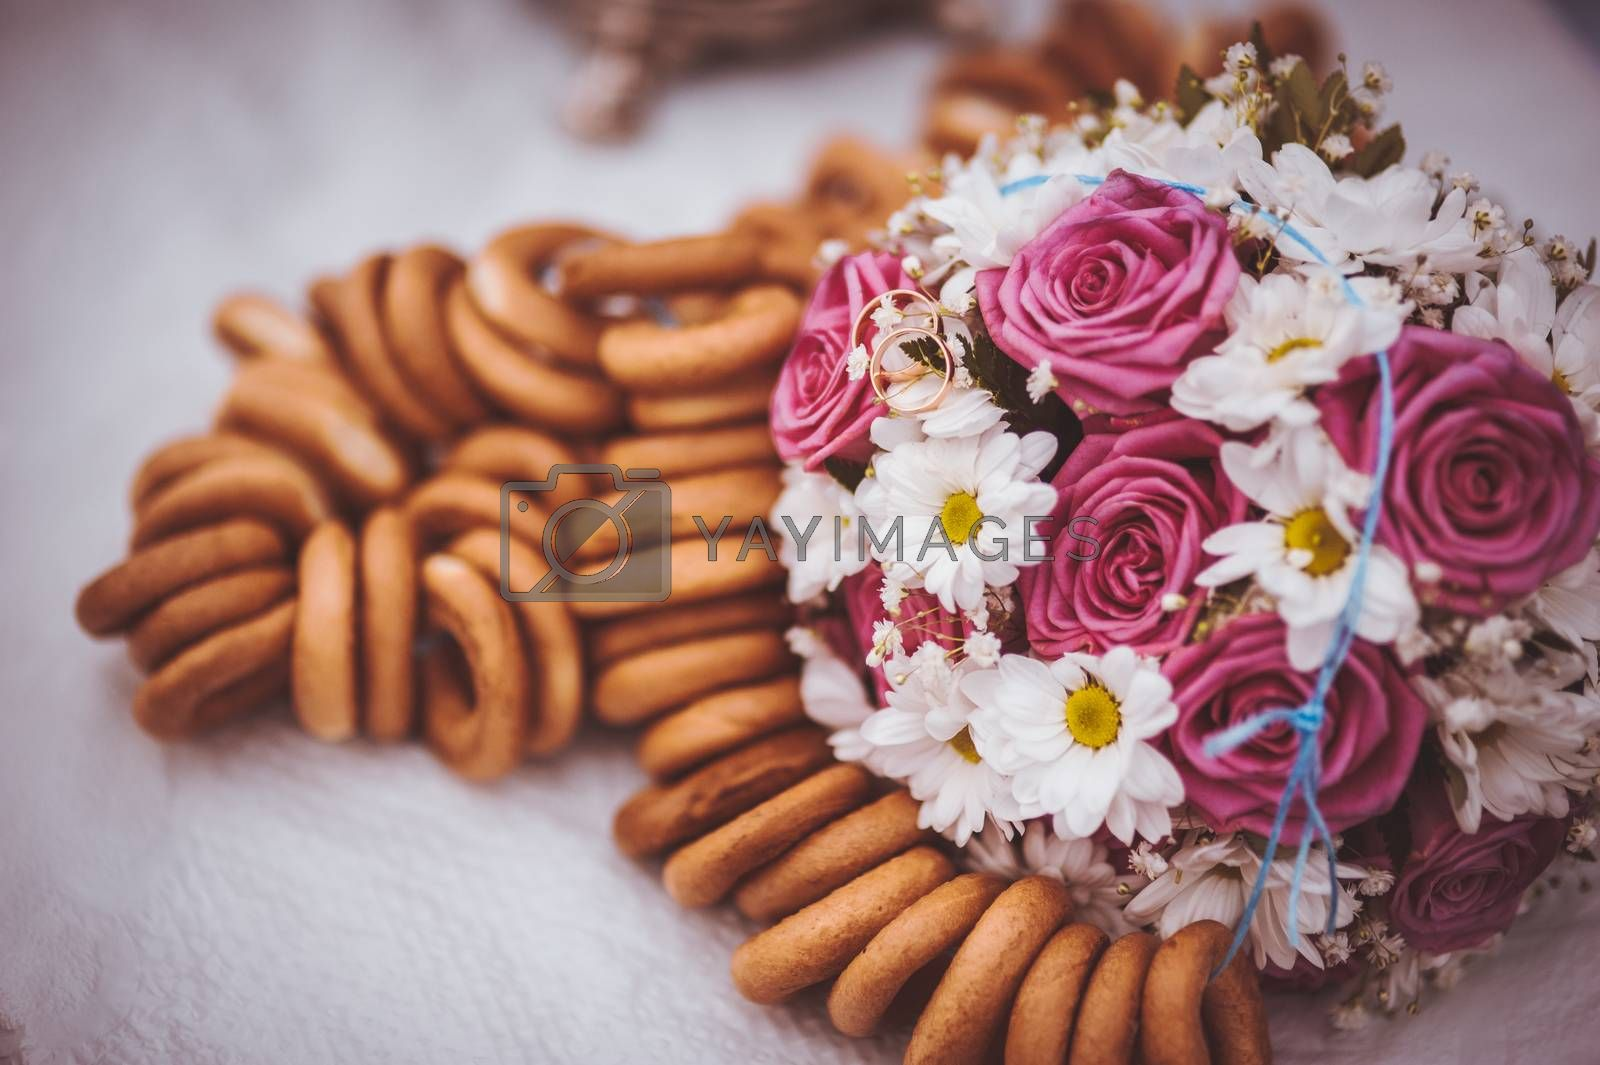 pink and white wedding bouquet next to russian bagels